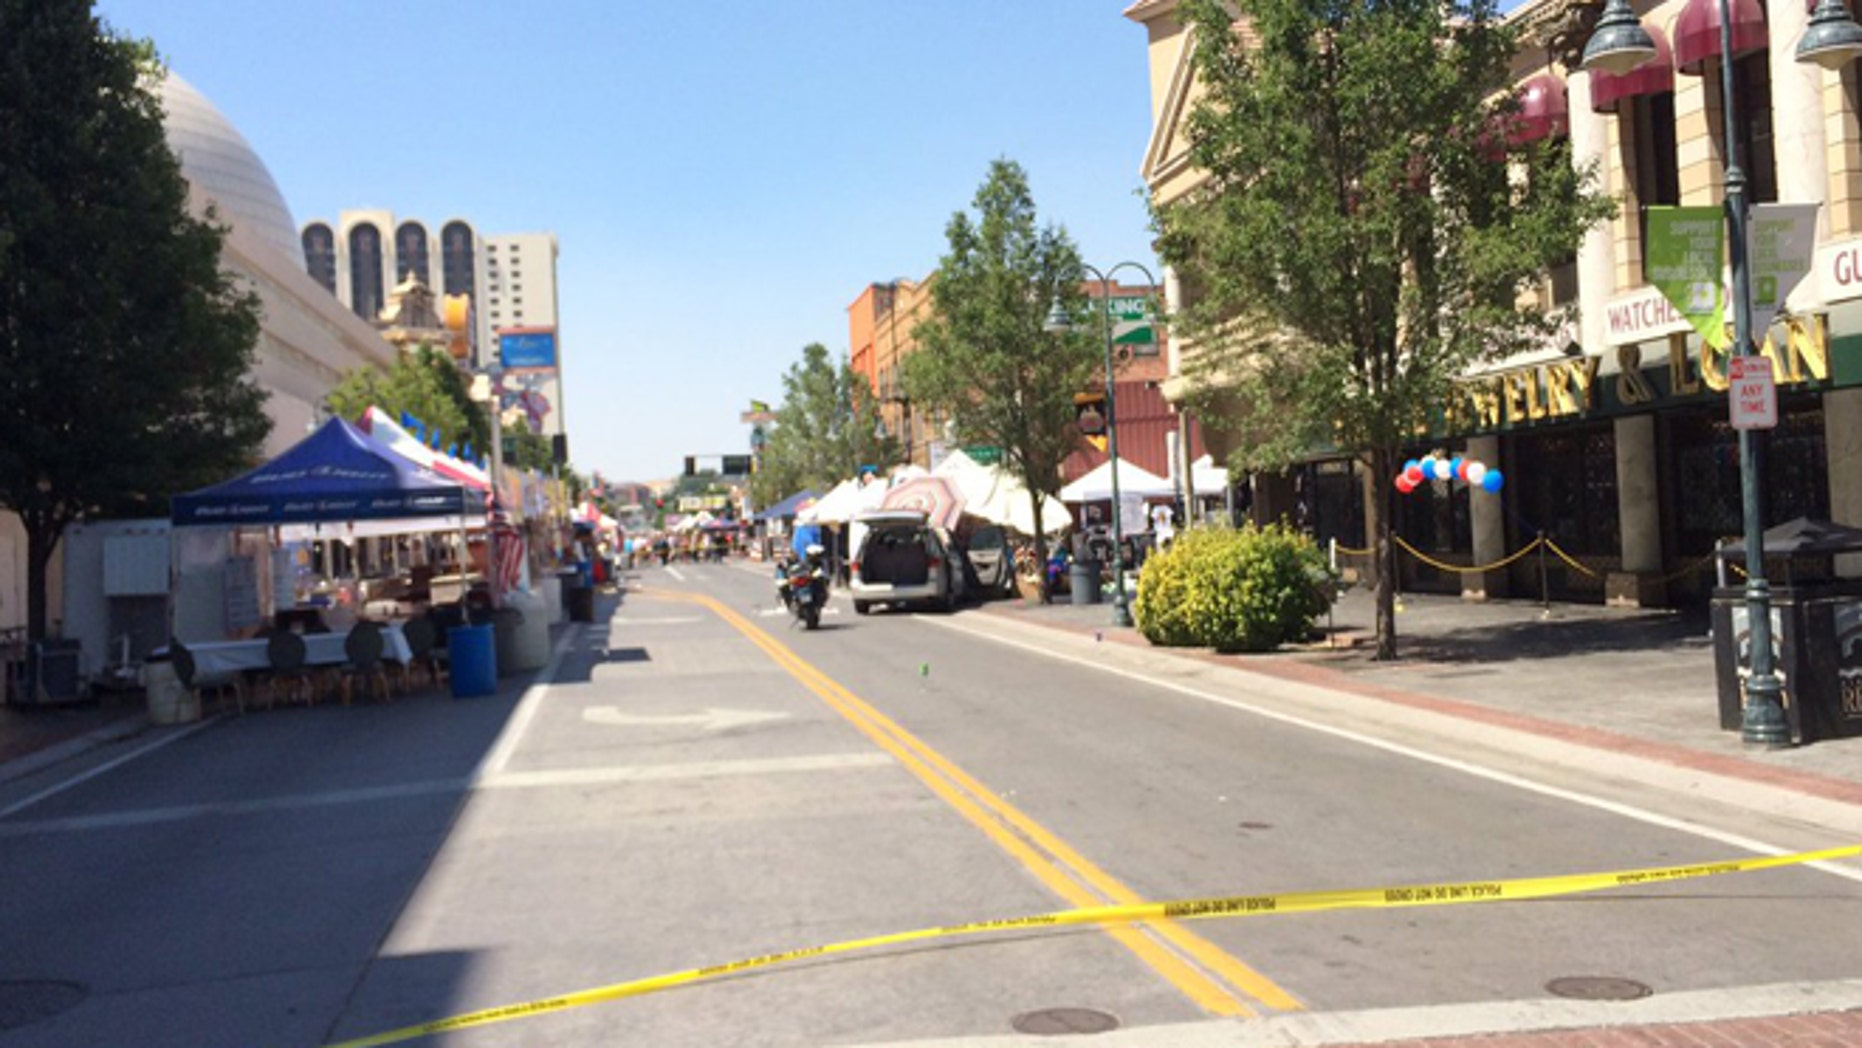 July 3, 2016: The scene at Wing Fest in downtown Reno after a man was shot by police.